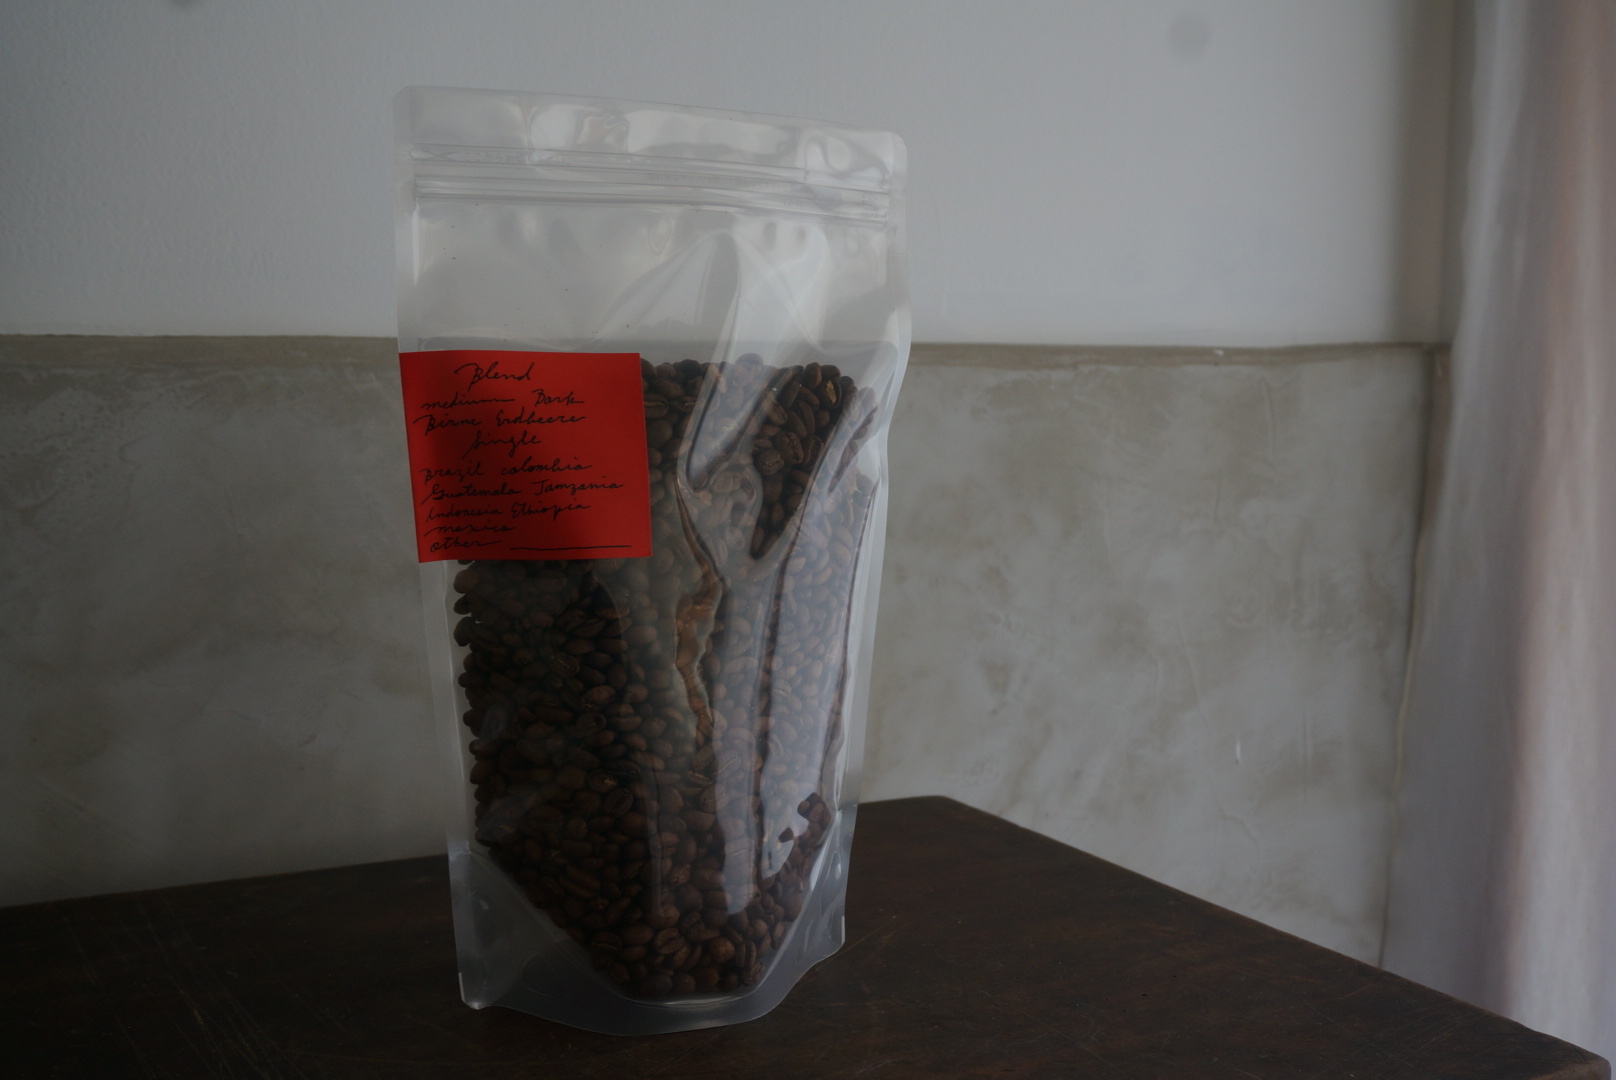 Indonesia dark 500g